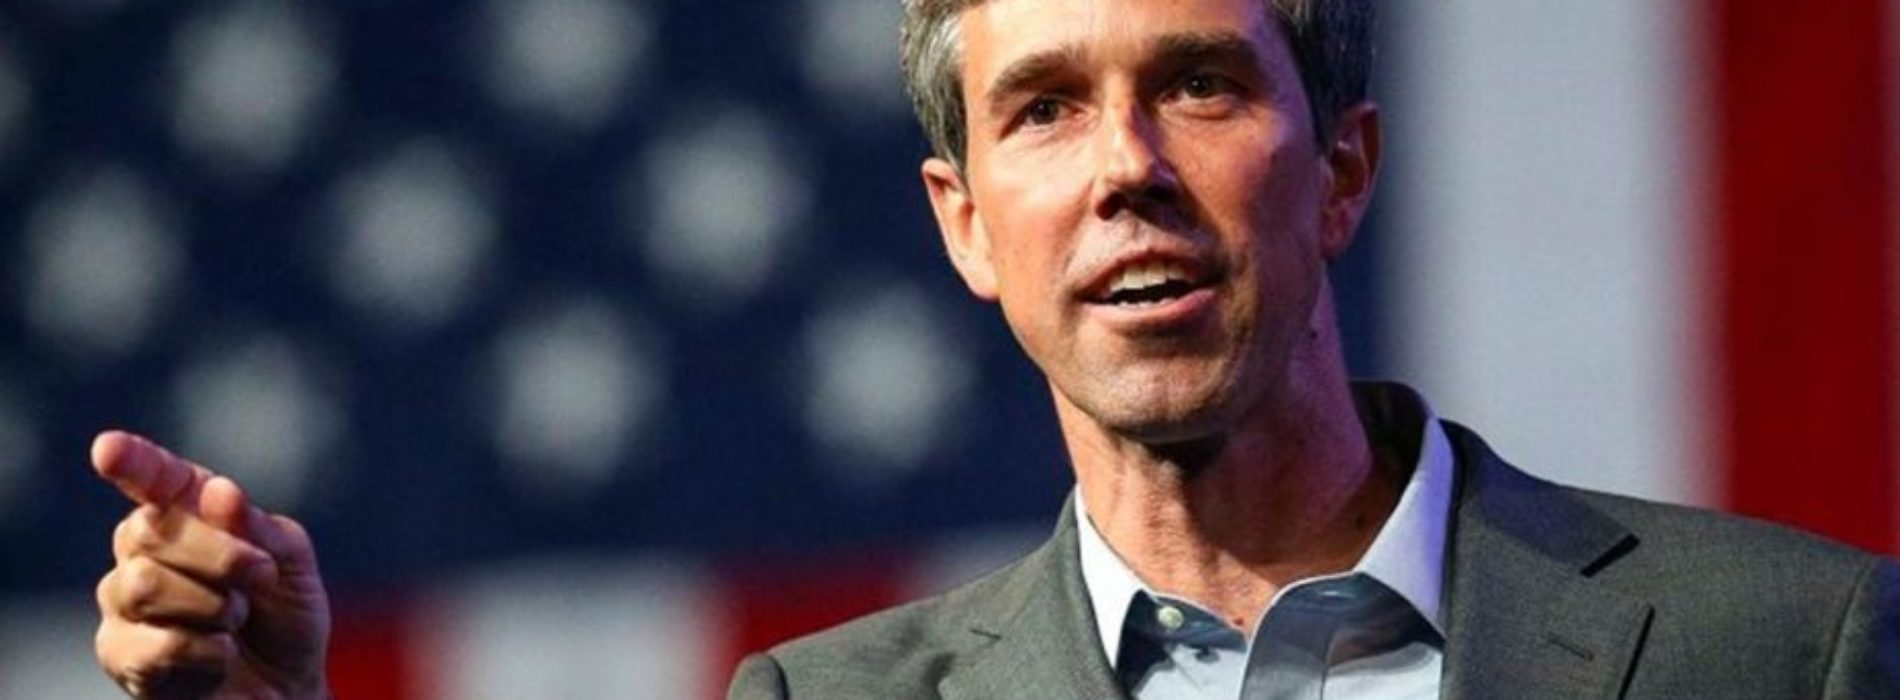 Beto O'Rourke Releases 10 Years of Tax Returns